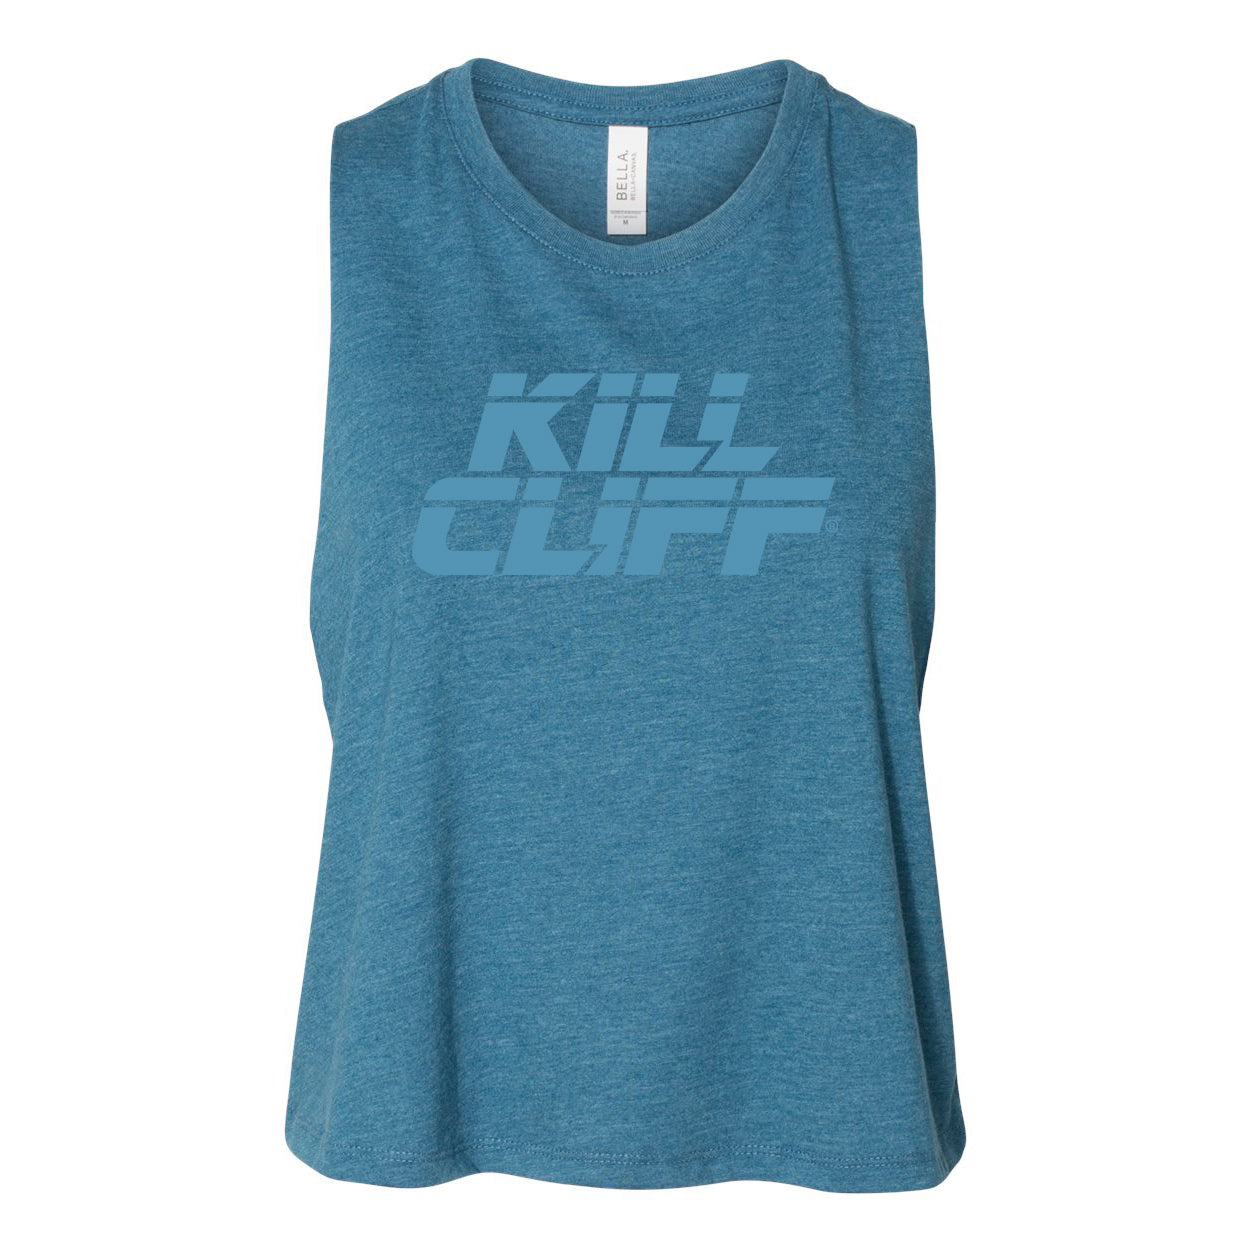 KILL CLIFF Womens Racerback Cropped Tank